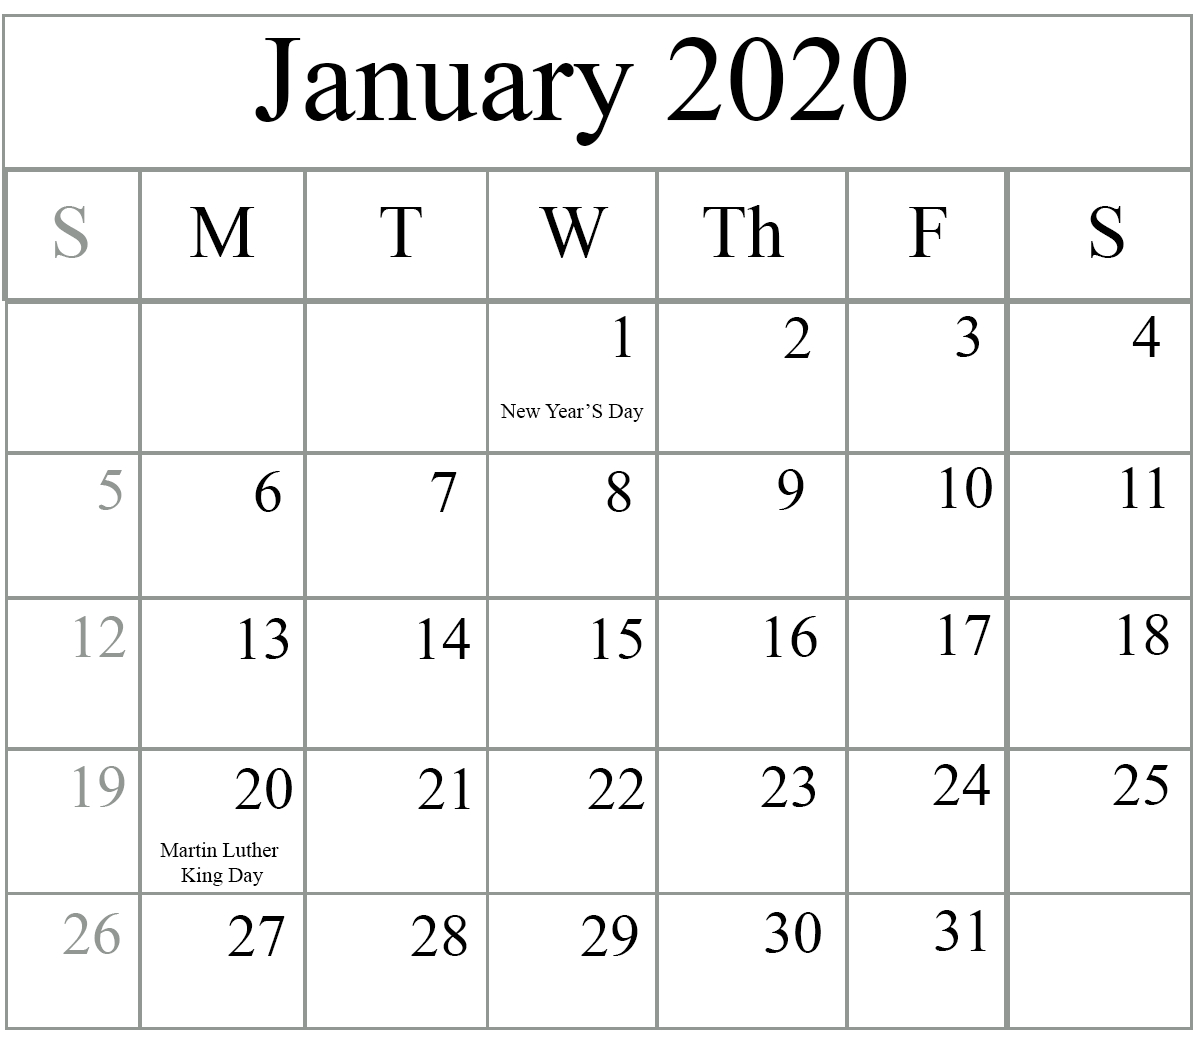 Free January 2020 Printable Calendar In Pdf, Excel & Word with 2020 Free Printable Calendar Large Numbers